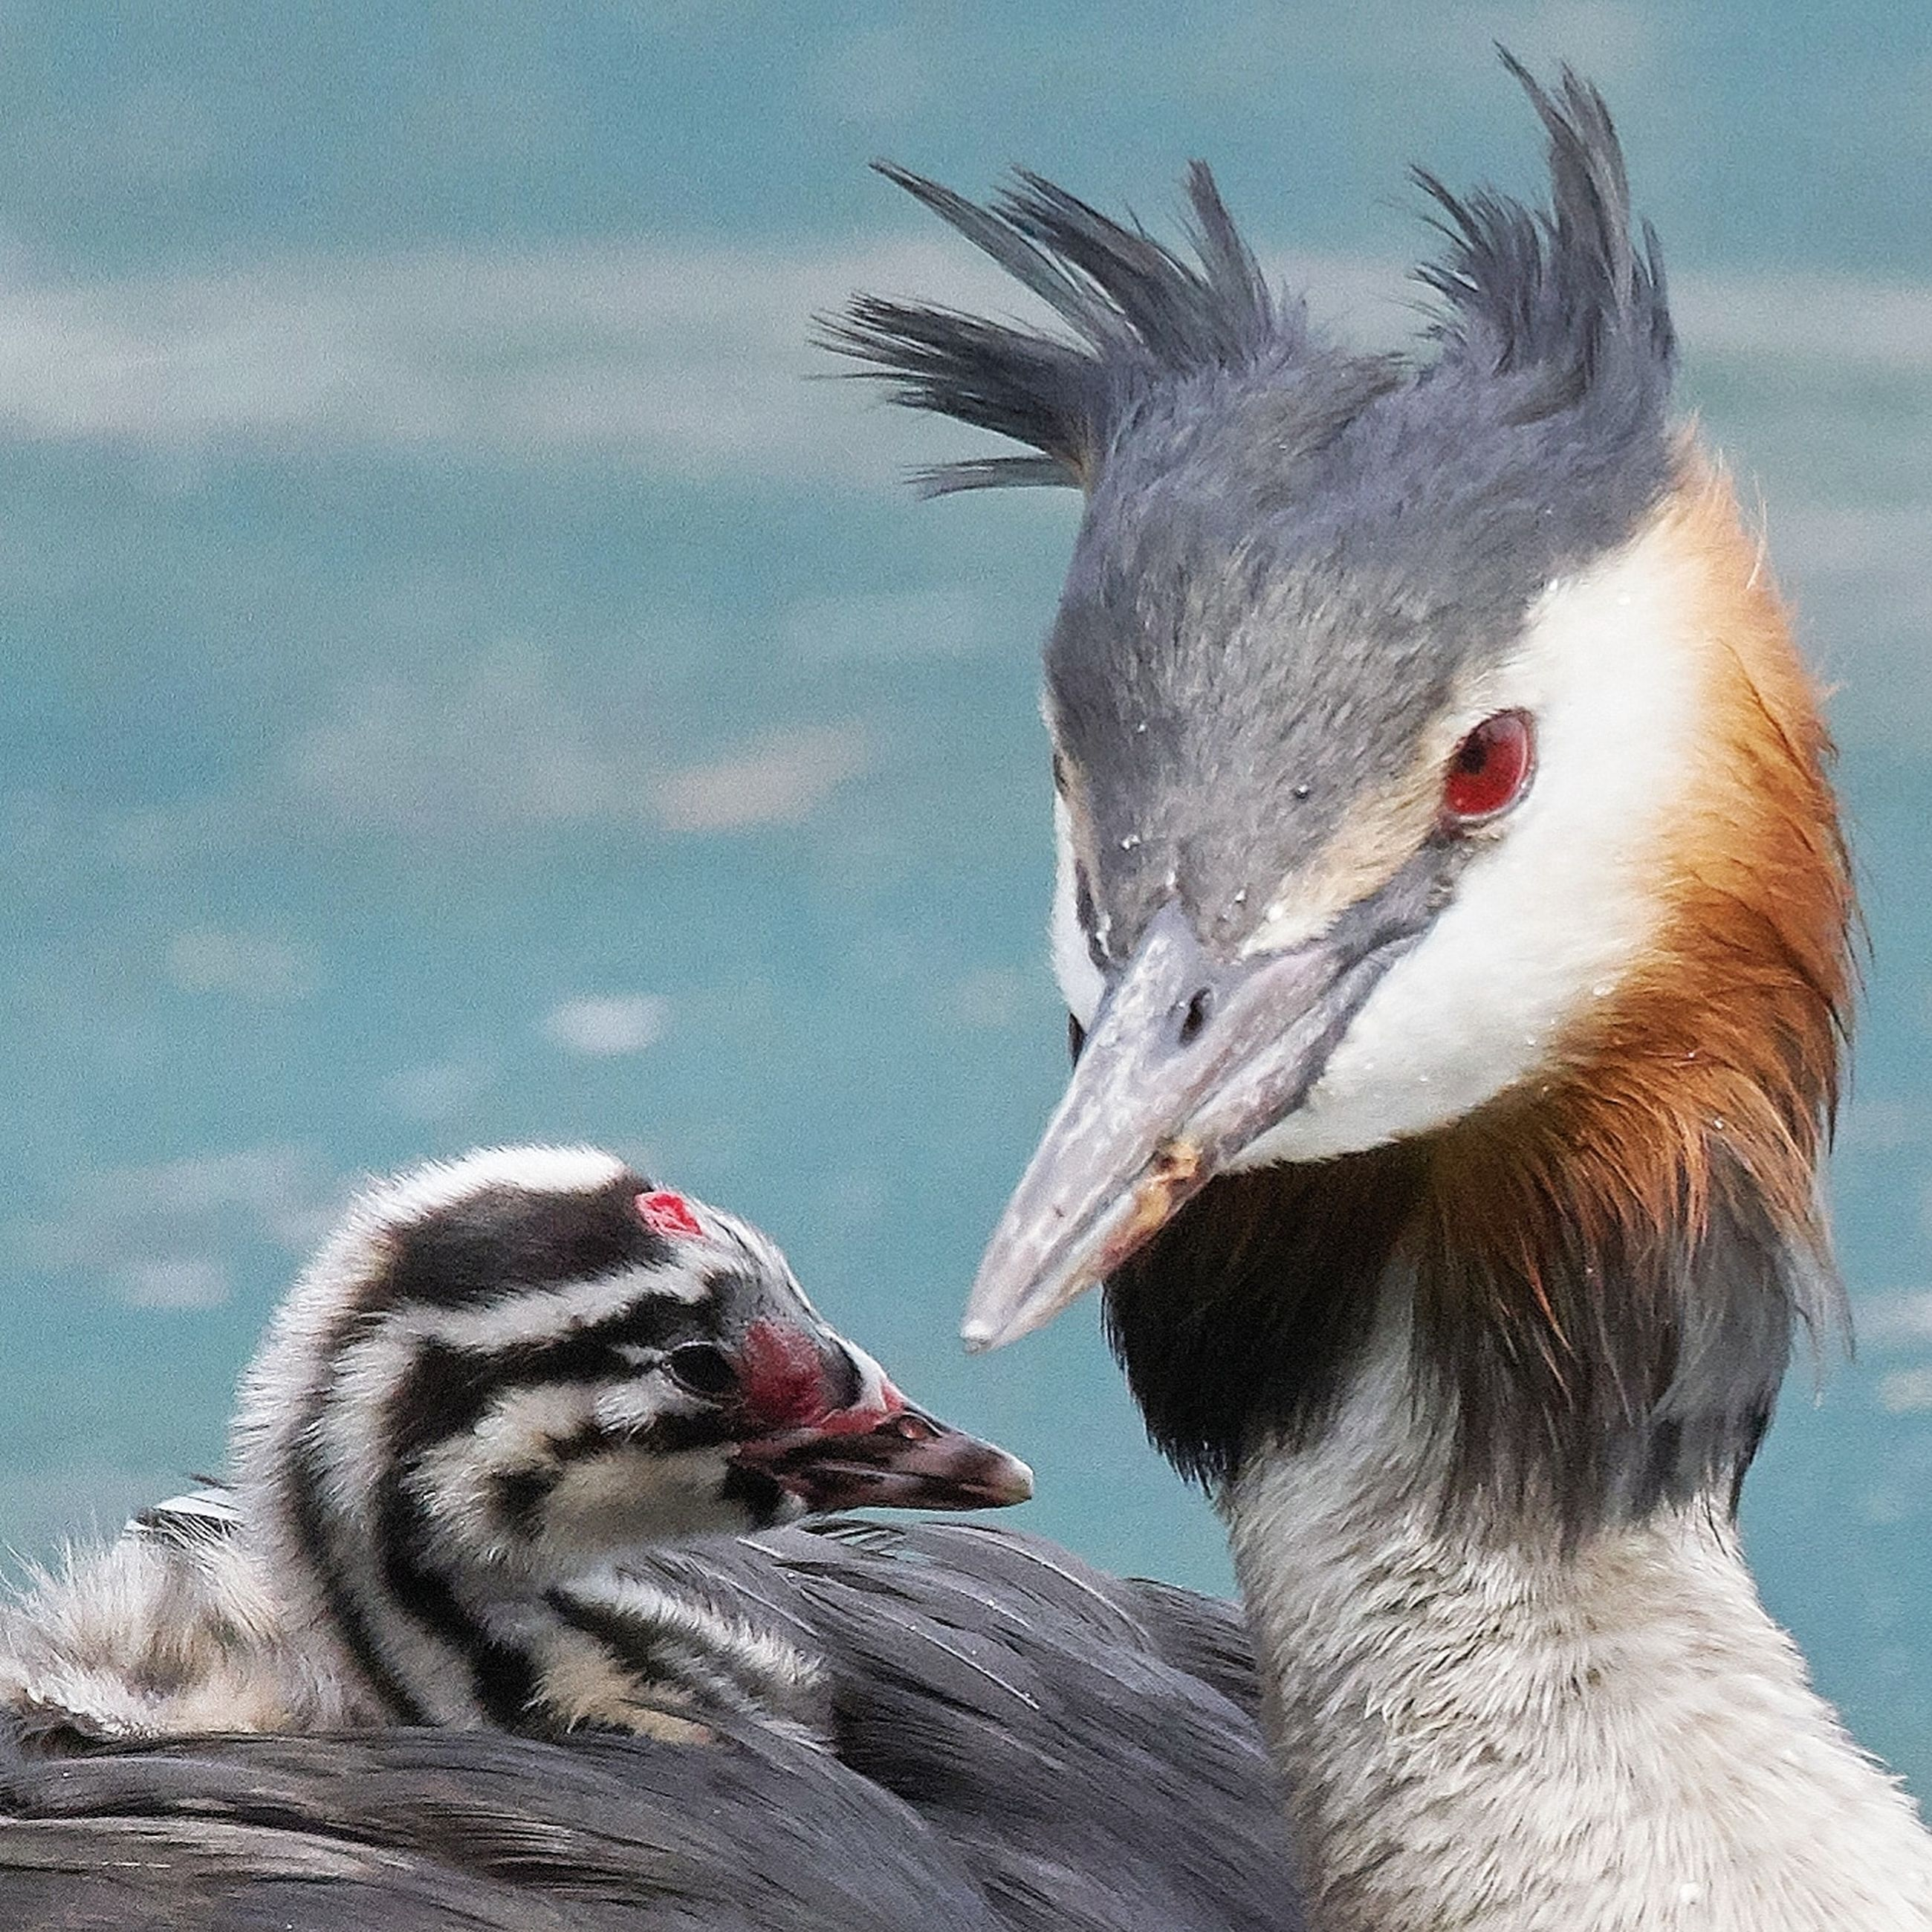 animal themes, bird, animal, vertebrate, animals in the wild, group of animals, animal wildlife, focus on foreground, two animals, beak, close-up, no people, day, nature, lake, duck, outdoors, young animal, water bird, mouth open, animal family, animal head